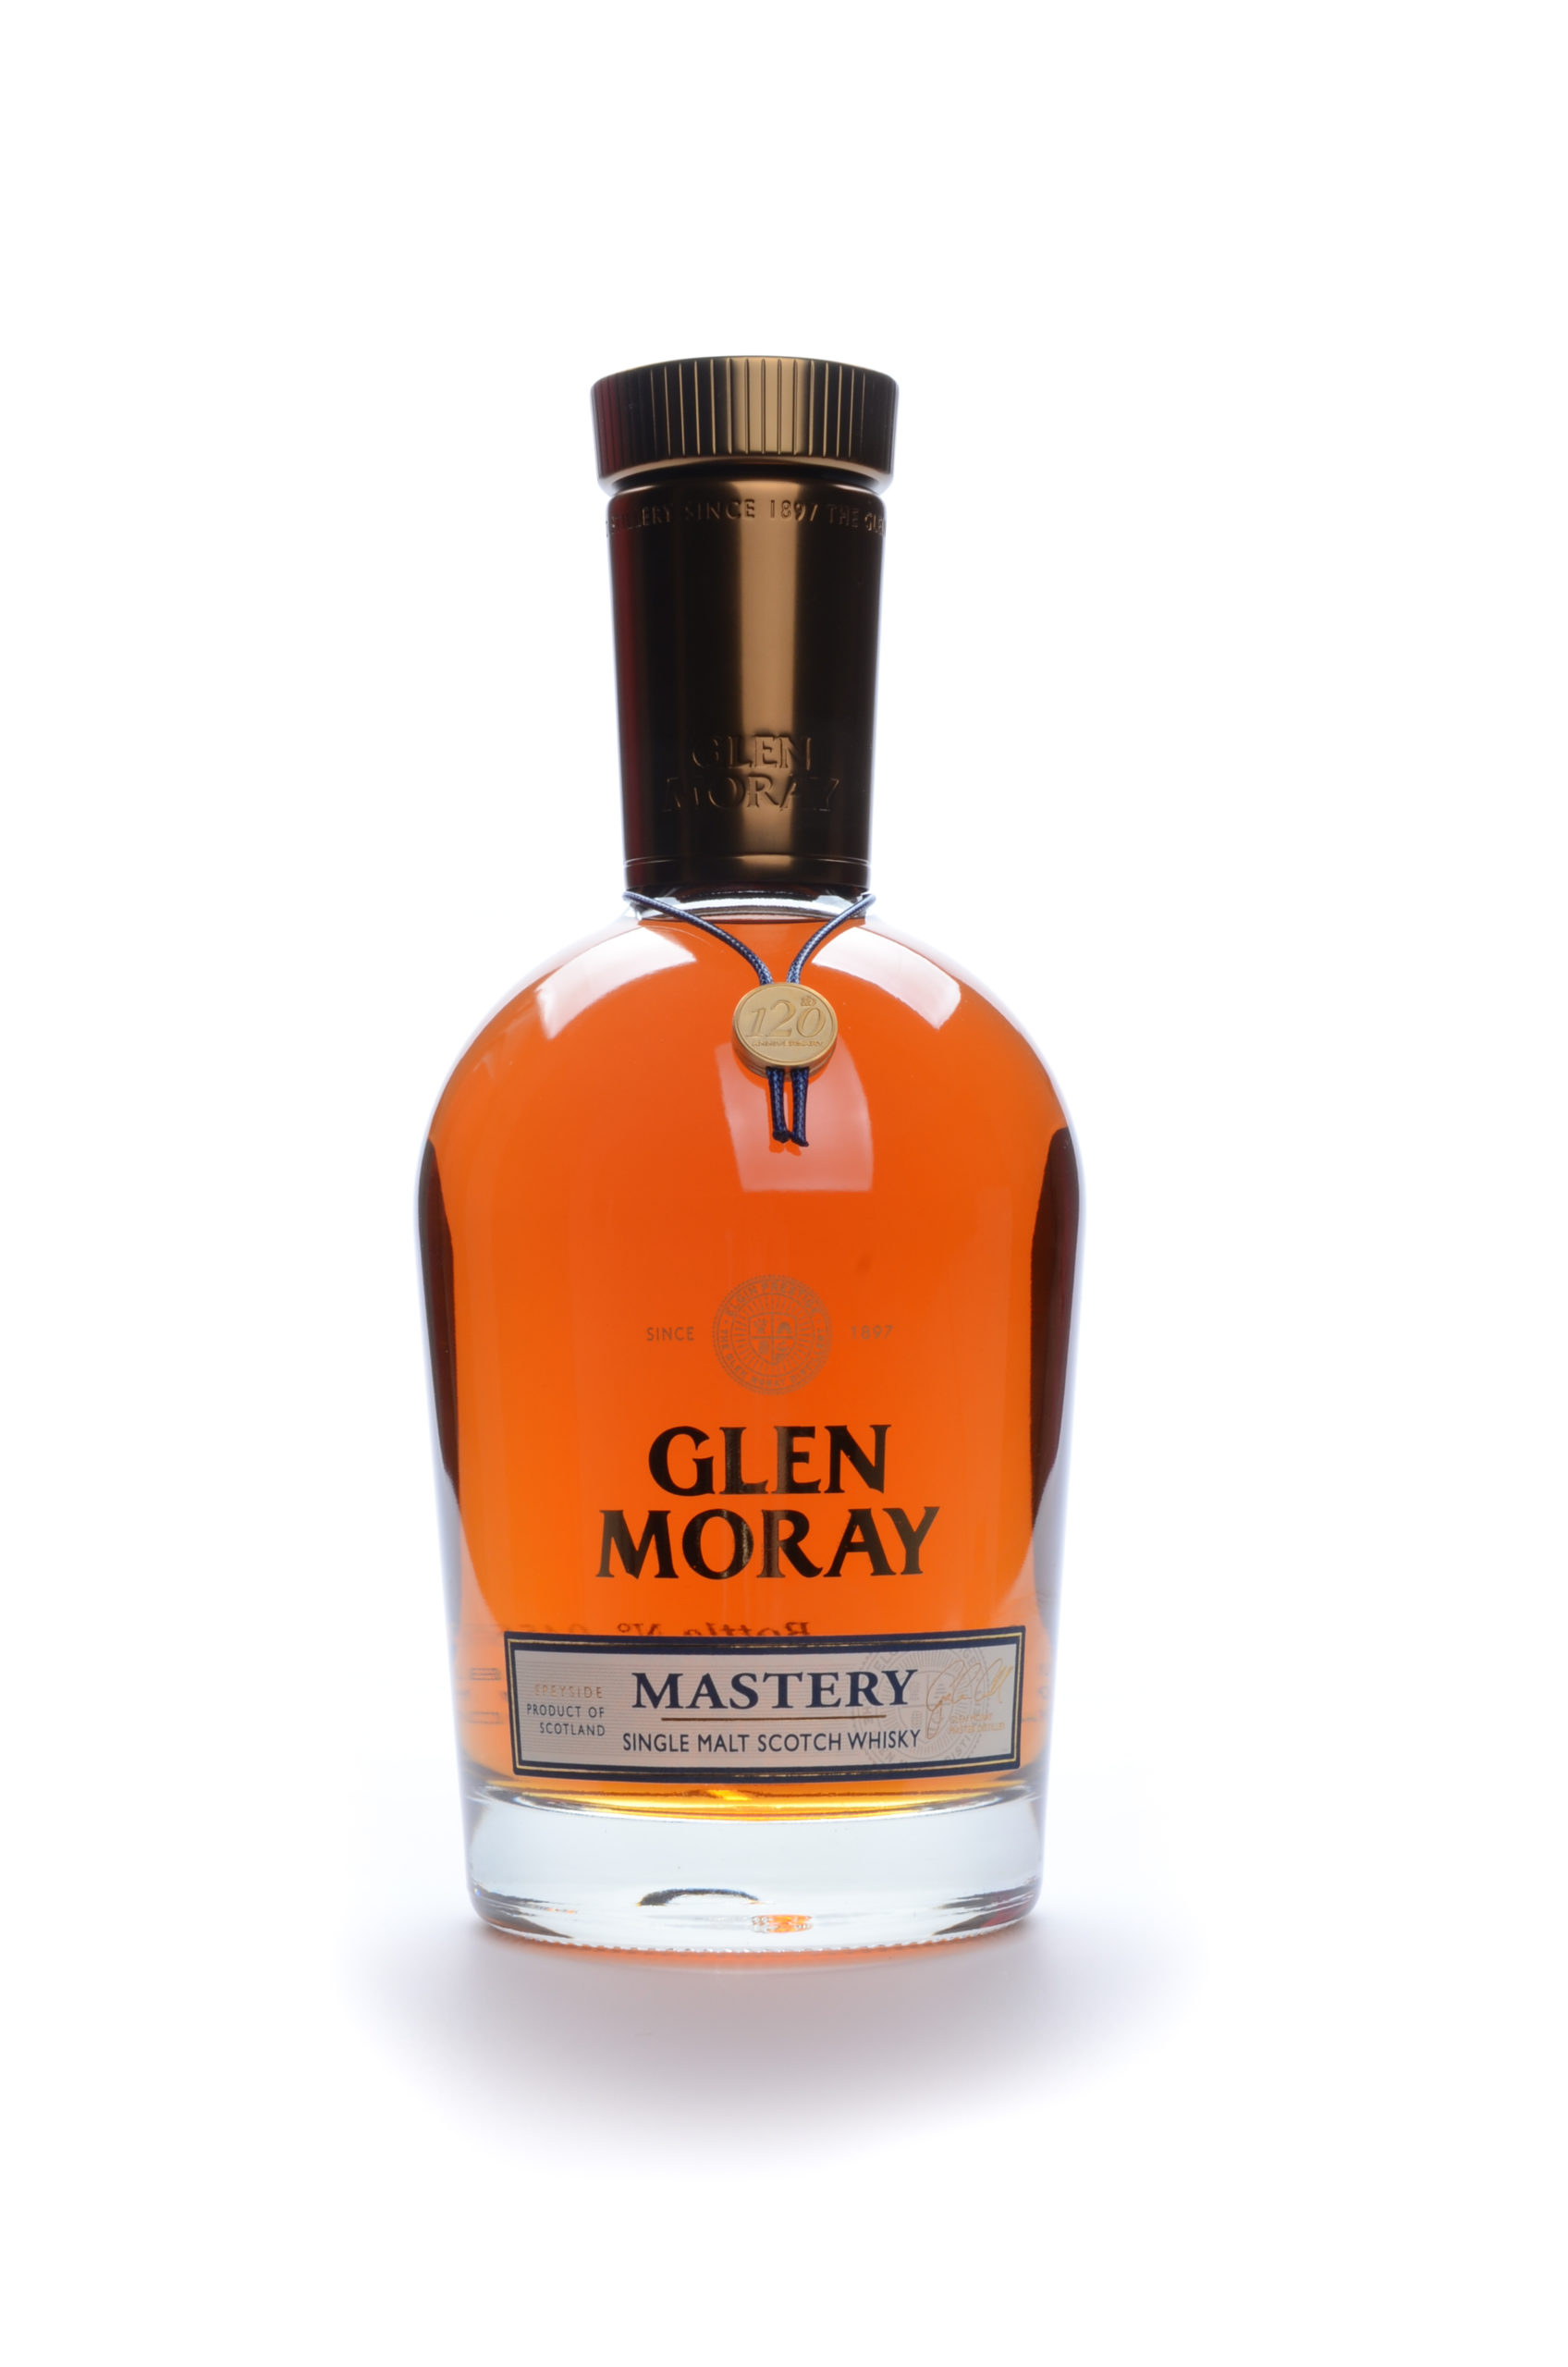 Glen Moray Mastery Bottle